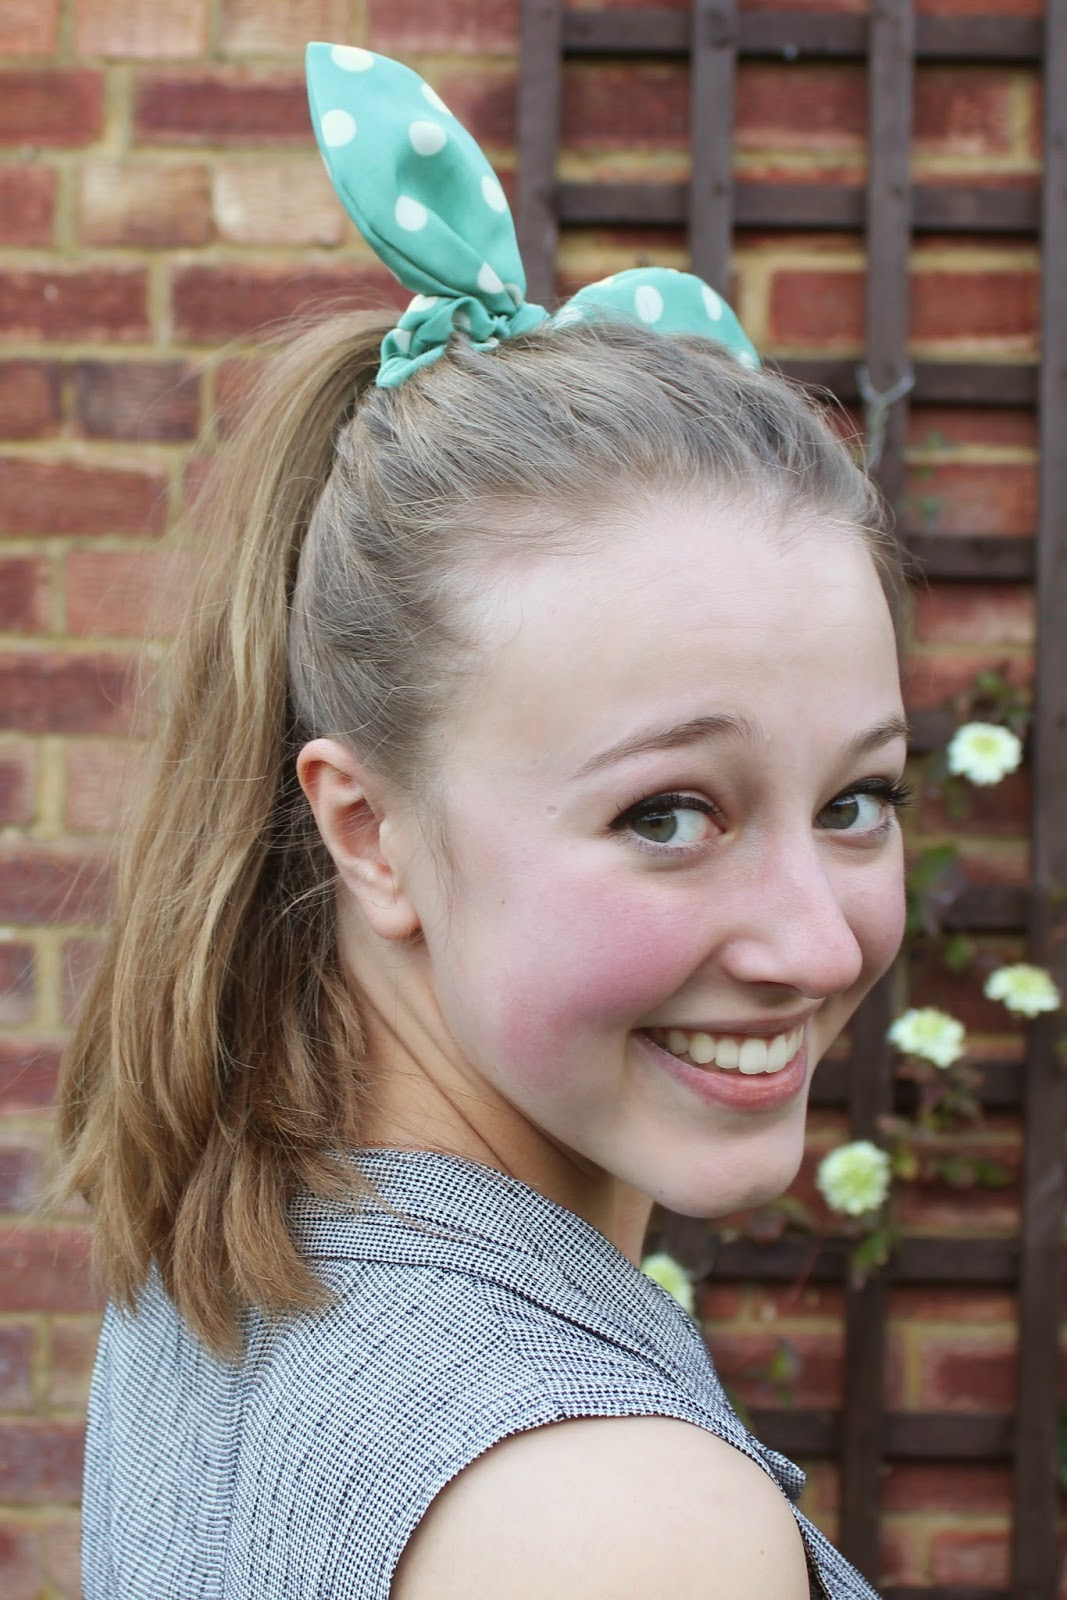 blogger-accessories-inspiration-fashion-scrunchie-hair-green-polka-dot-bow-camden